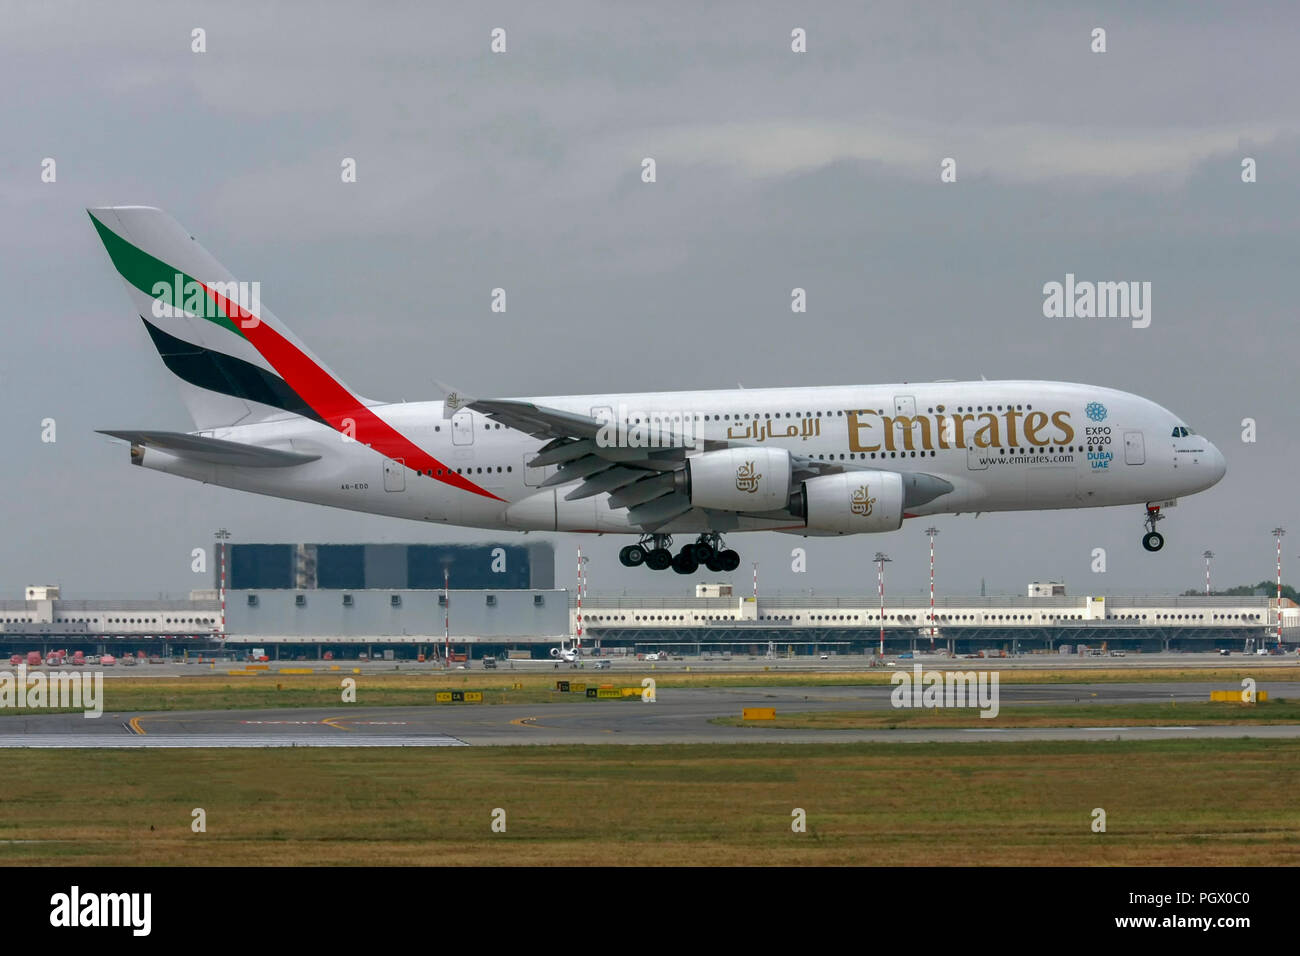 A6-EDO Emirates Airways Airbus A380-800 at Malpensa (MXP / LIMC), Milan, Italy - Stock Image